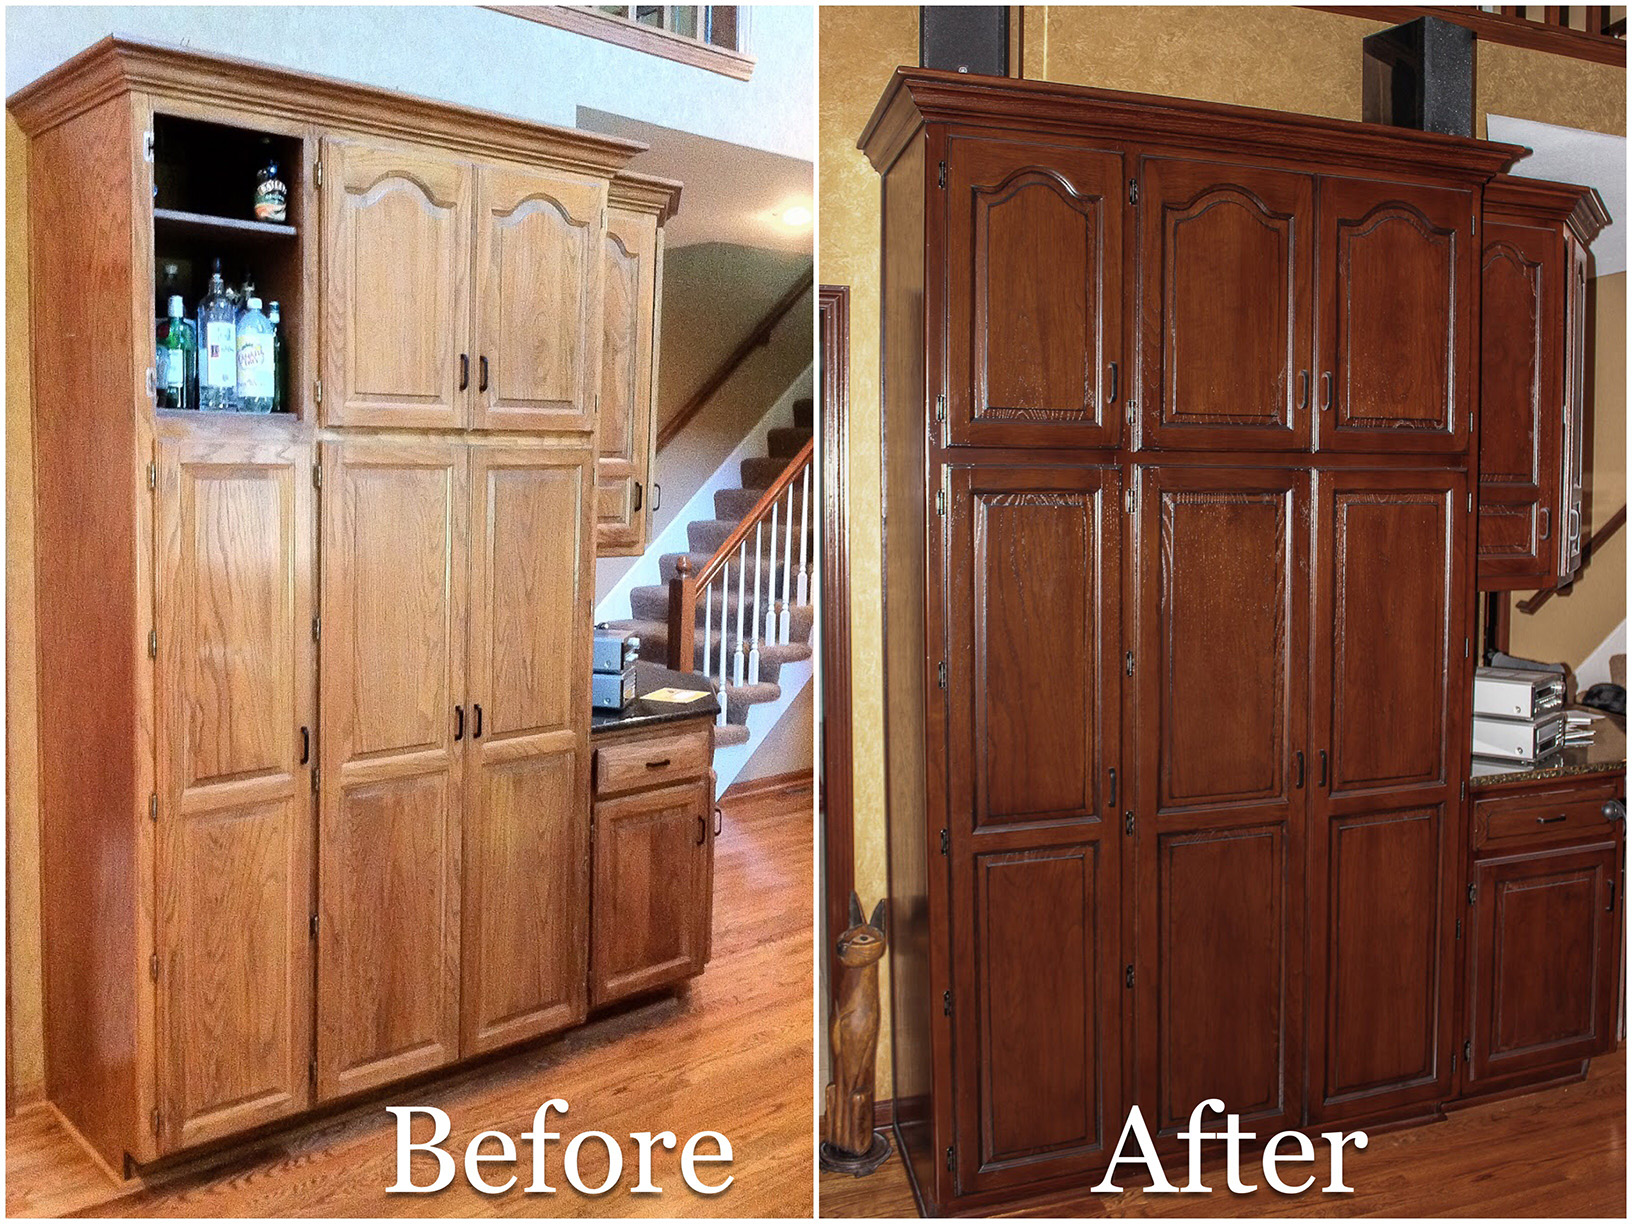 Cabinet Re-staining in Kansas City